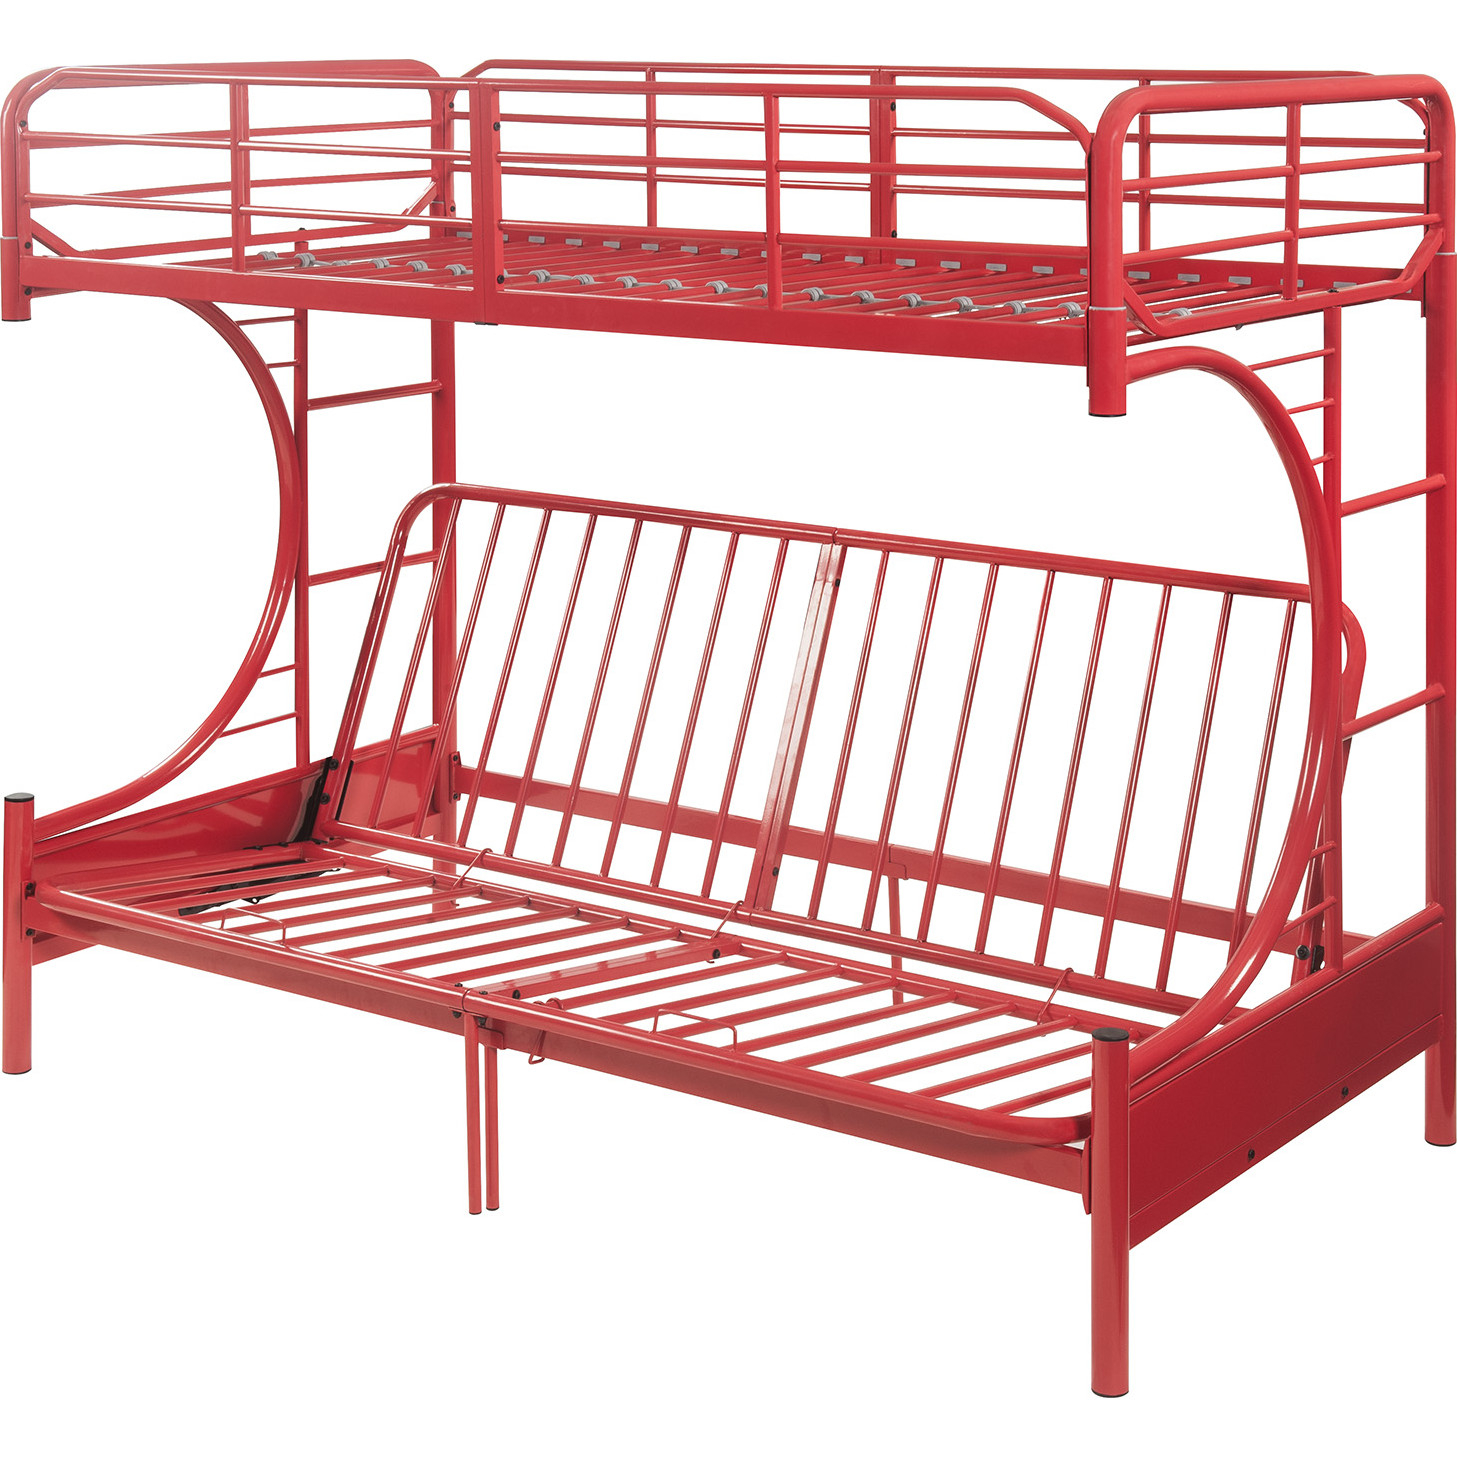 Acme 02081rd Eclipse Twin Full Futon Bunk Bed In Red Metal